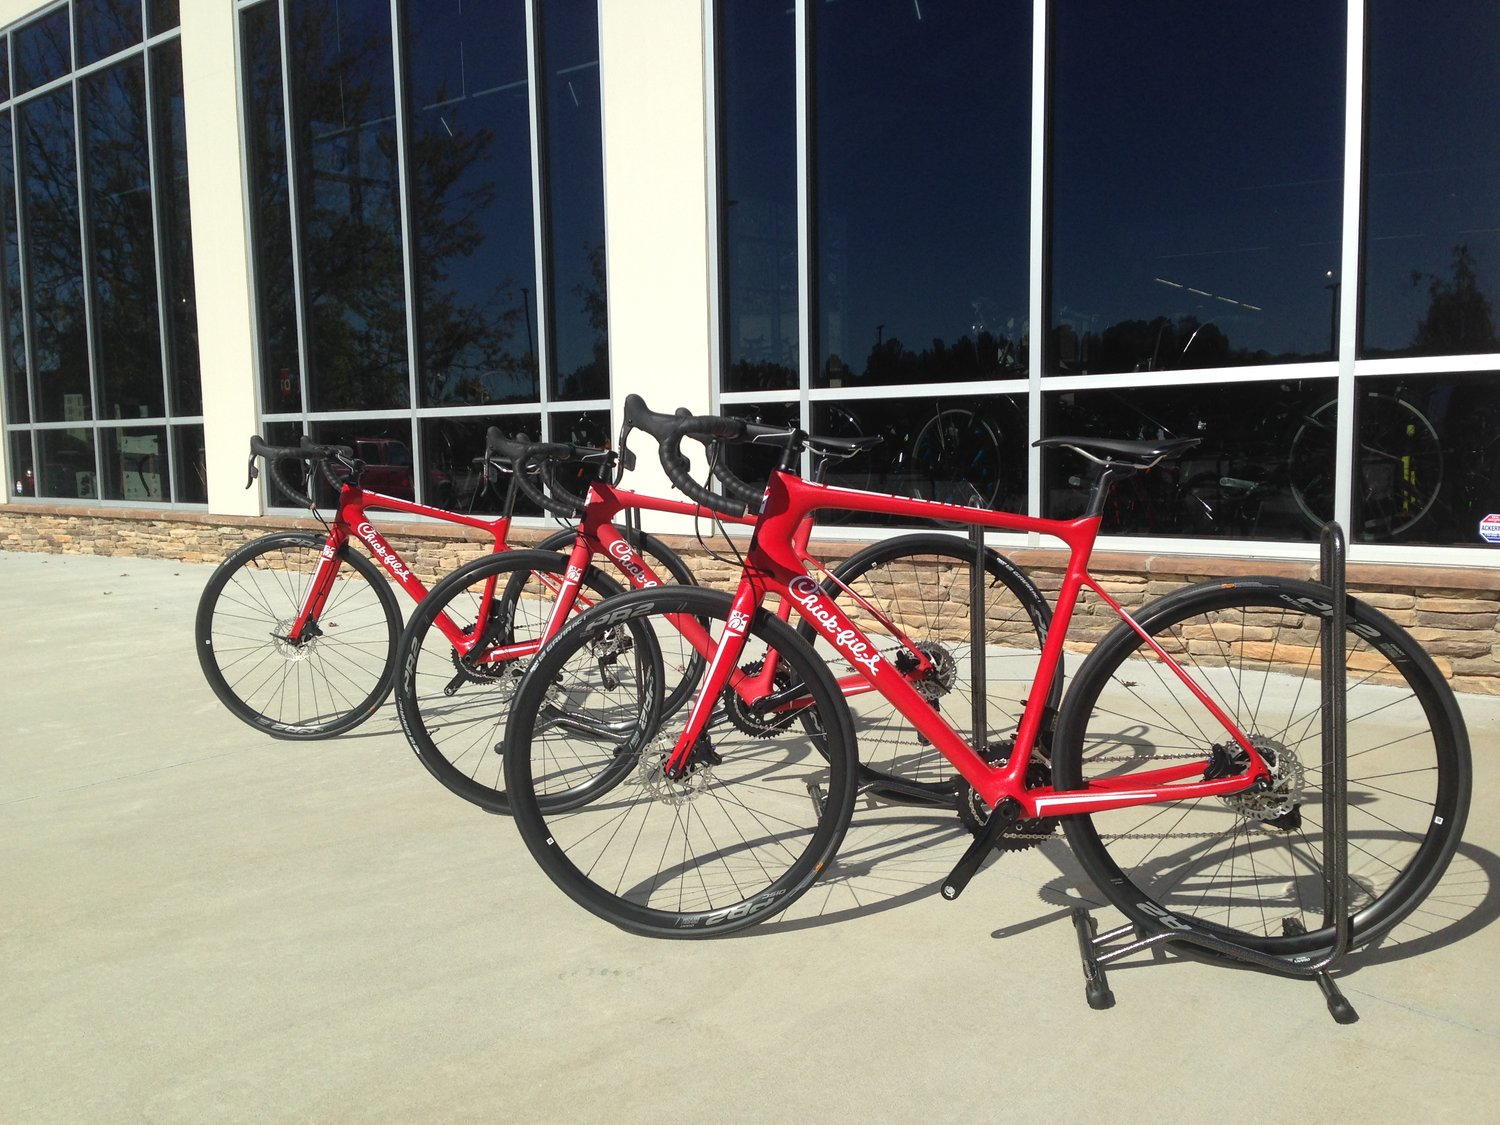 Chick-fil-a Bicycles